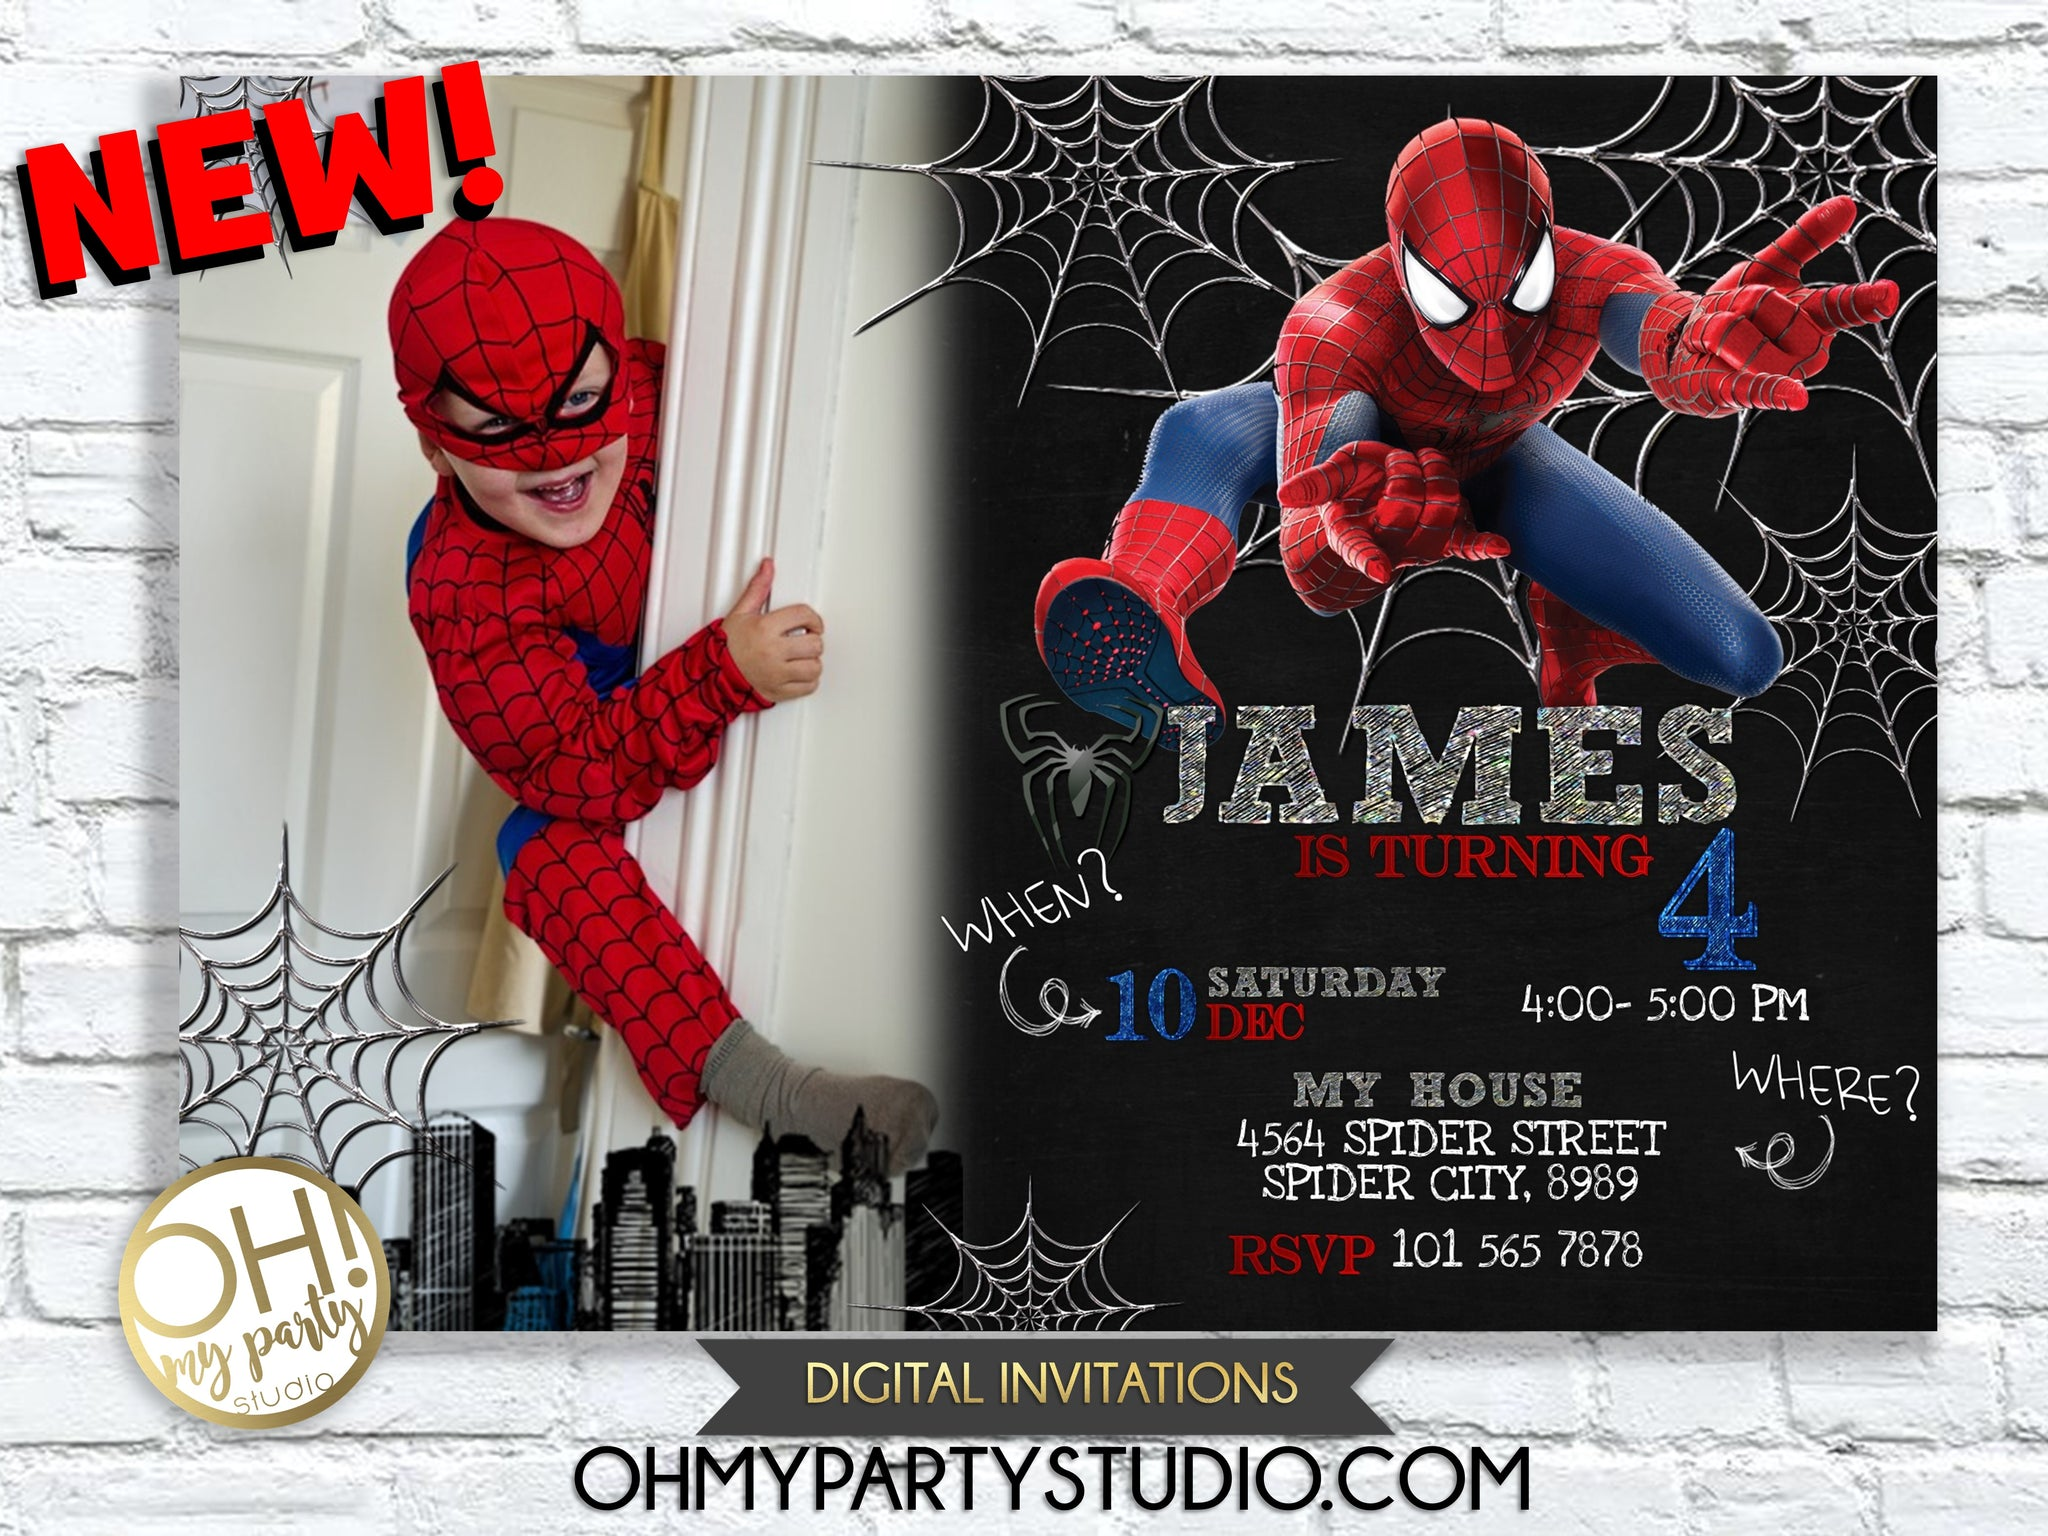 SPIDERMAN INVITATION, SPIDER-MAN INVITATION, SPIDERMAN INVITATIONS, SPIDERMAN BIRTHDAY PARTY, SPIDERMAN INVITATION DIGITAL, SPIDERMAN PRINTABLE